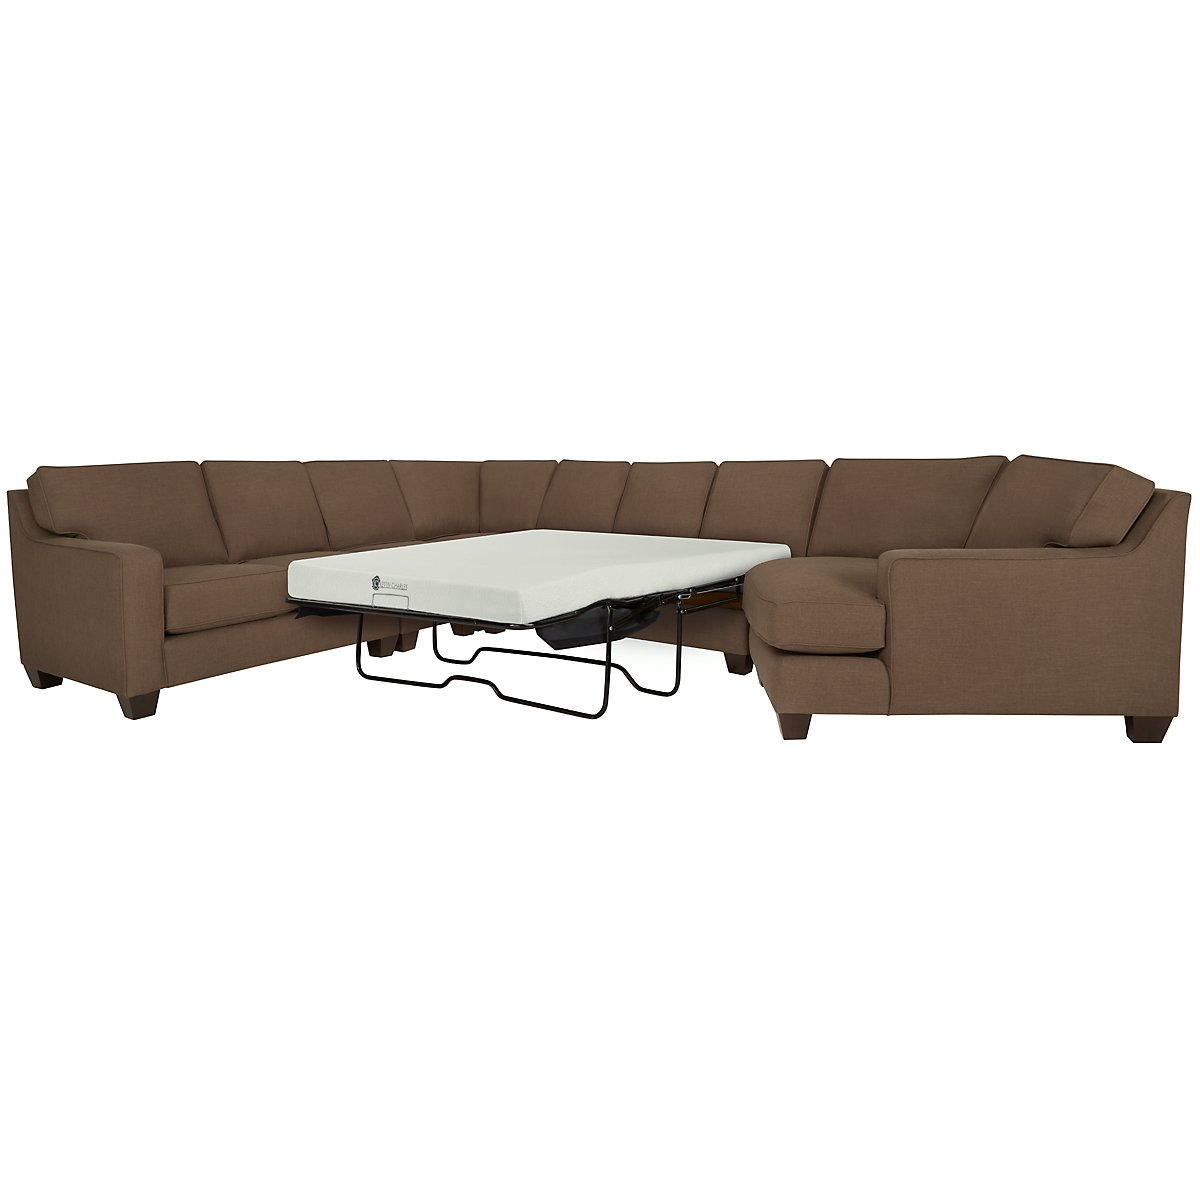 York Dark Brown Fabric Large Right Cuddler Memory Foam Sleeper Sectional